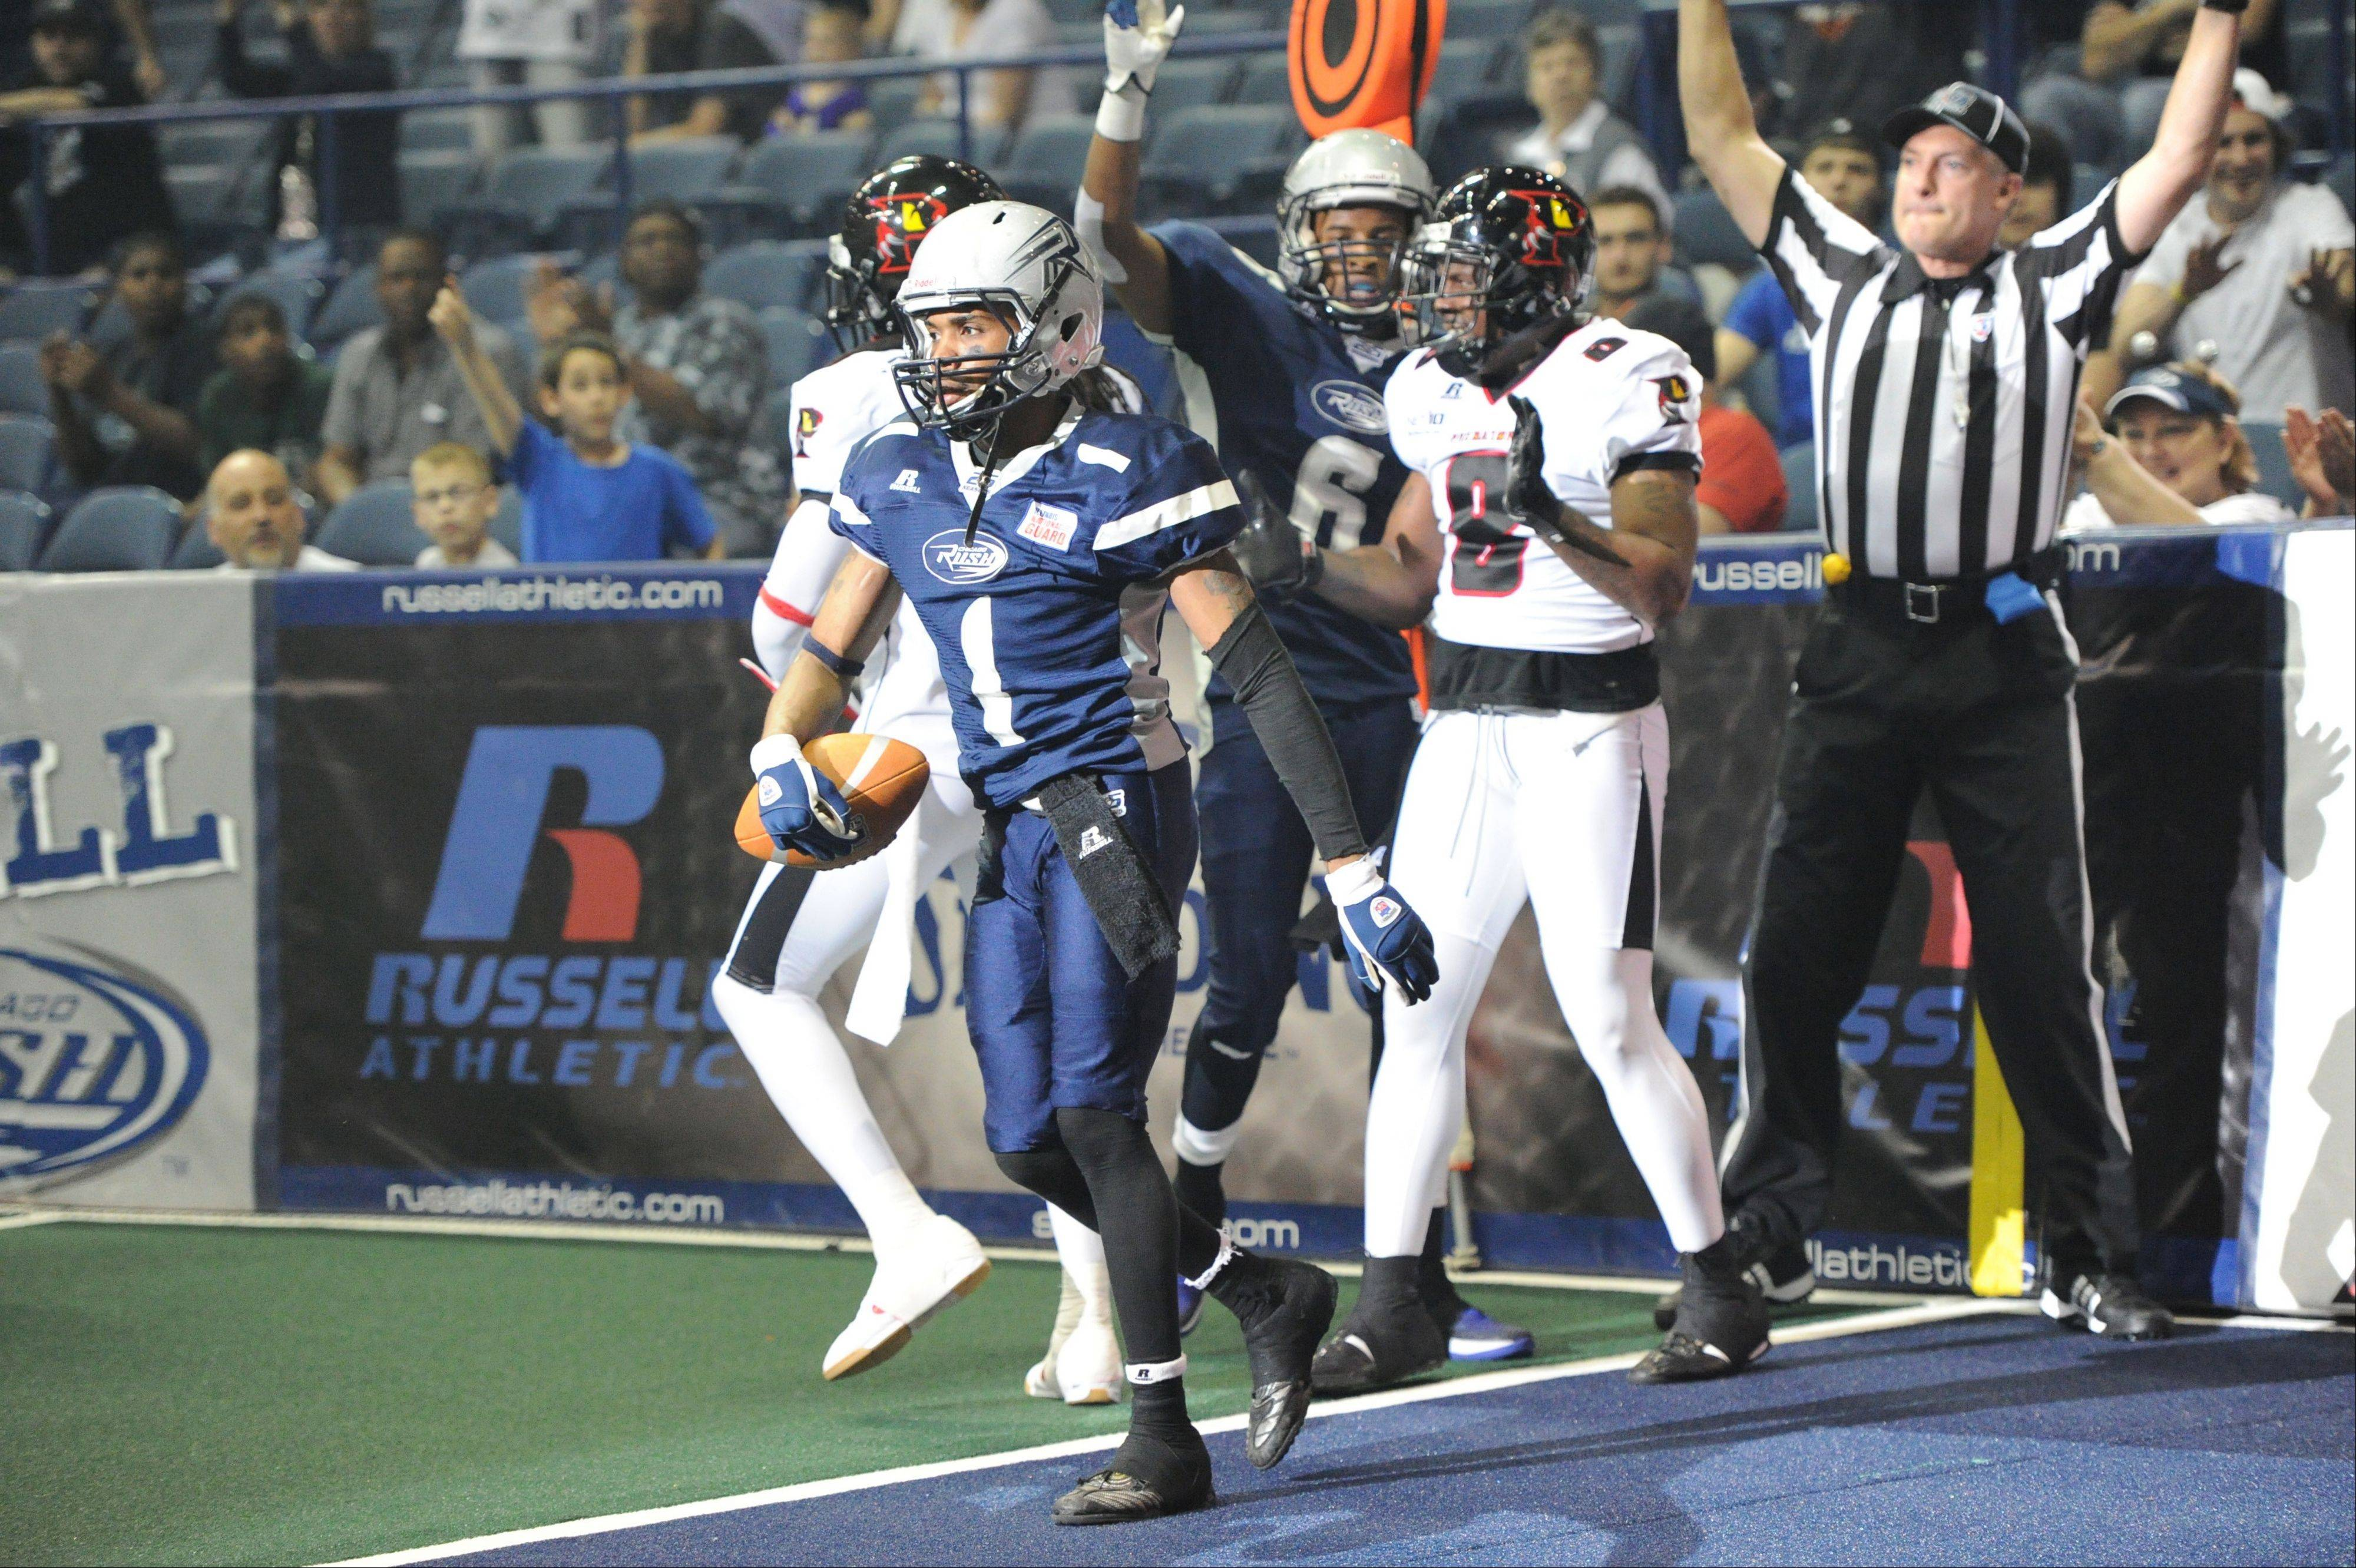 Wide receiver Reggie Gray of the Chicago Rush grabbed 5 touchdown passes from quarterback Rush Michna against the Orlando Predators at Allstate Arena Thursday.